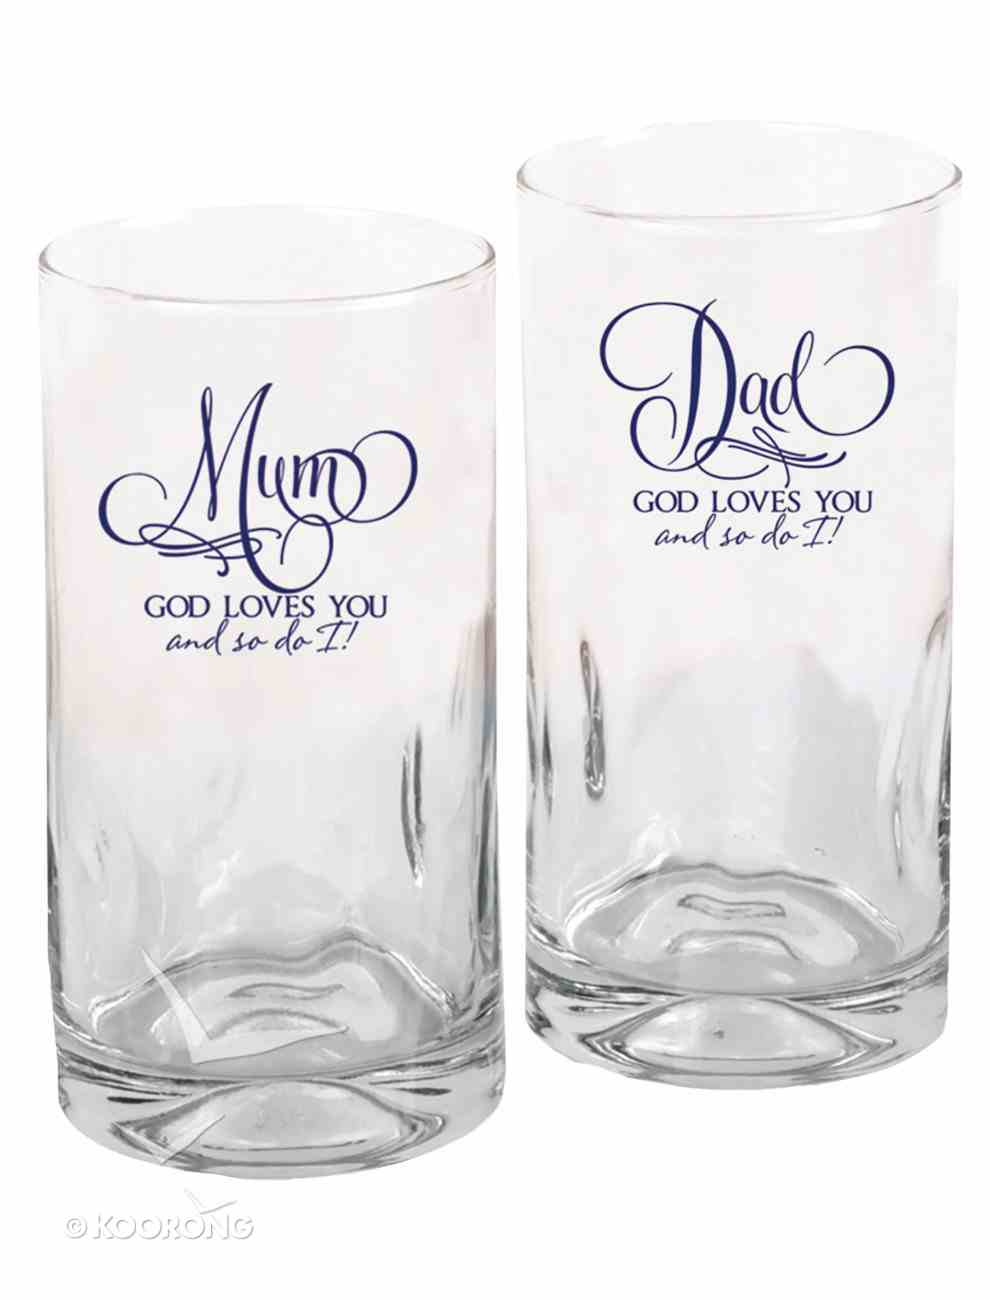 Set of 2 Glass Tumblers: Mum & Dad, God Loves You and So Do I Homeware